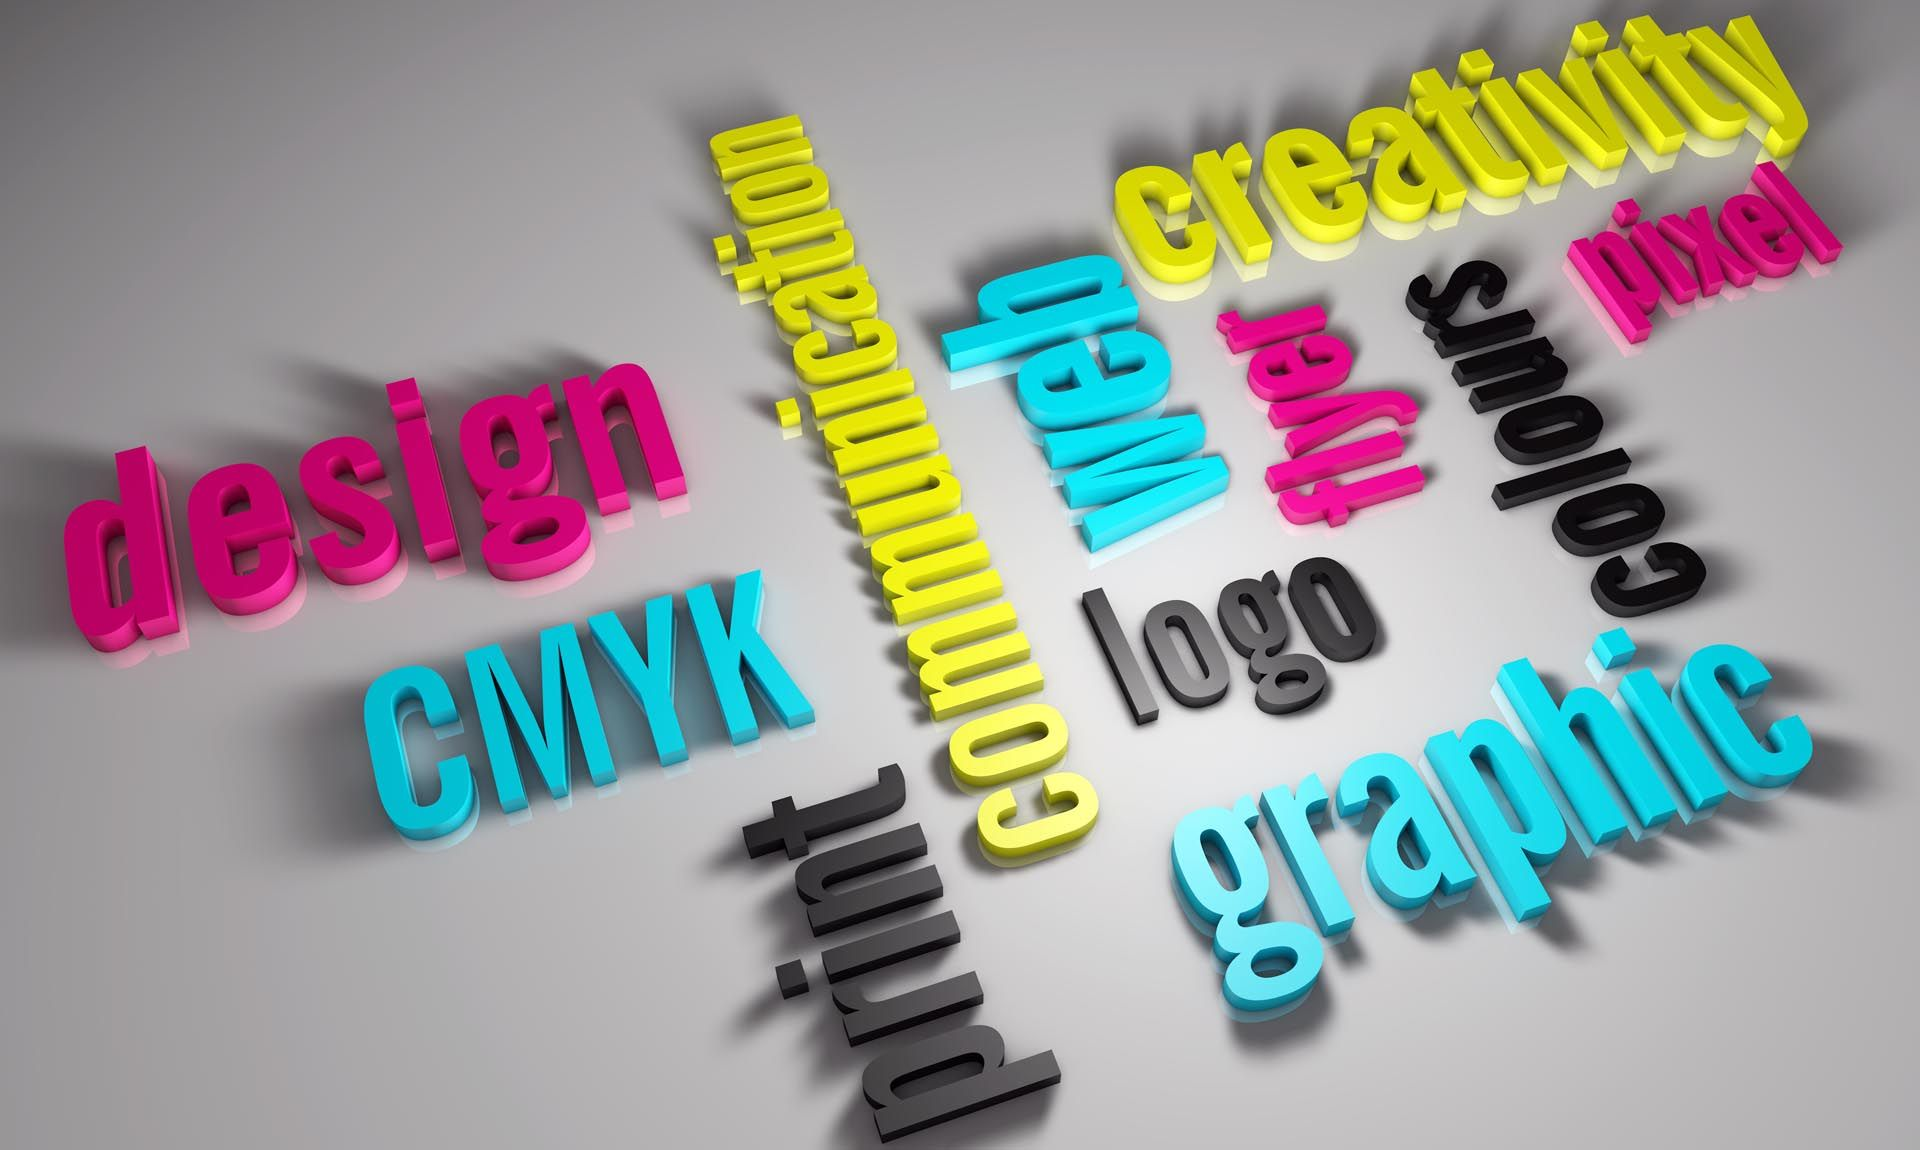 graphic design is based on creativity if you need